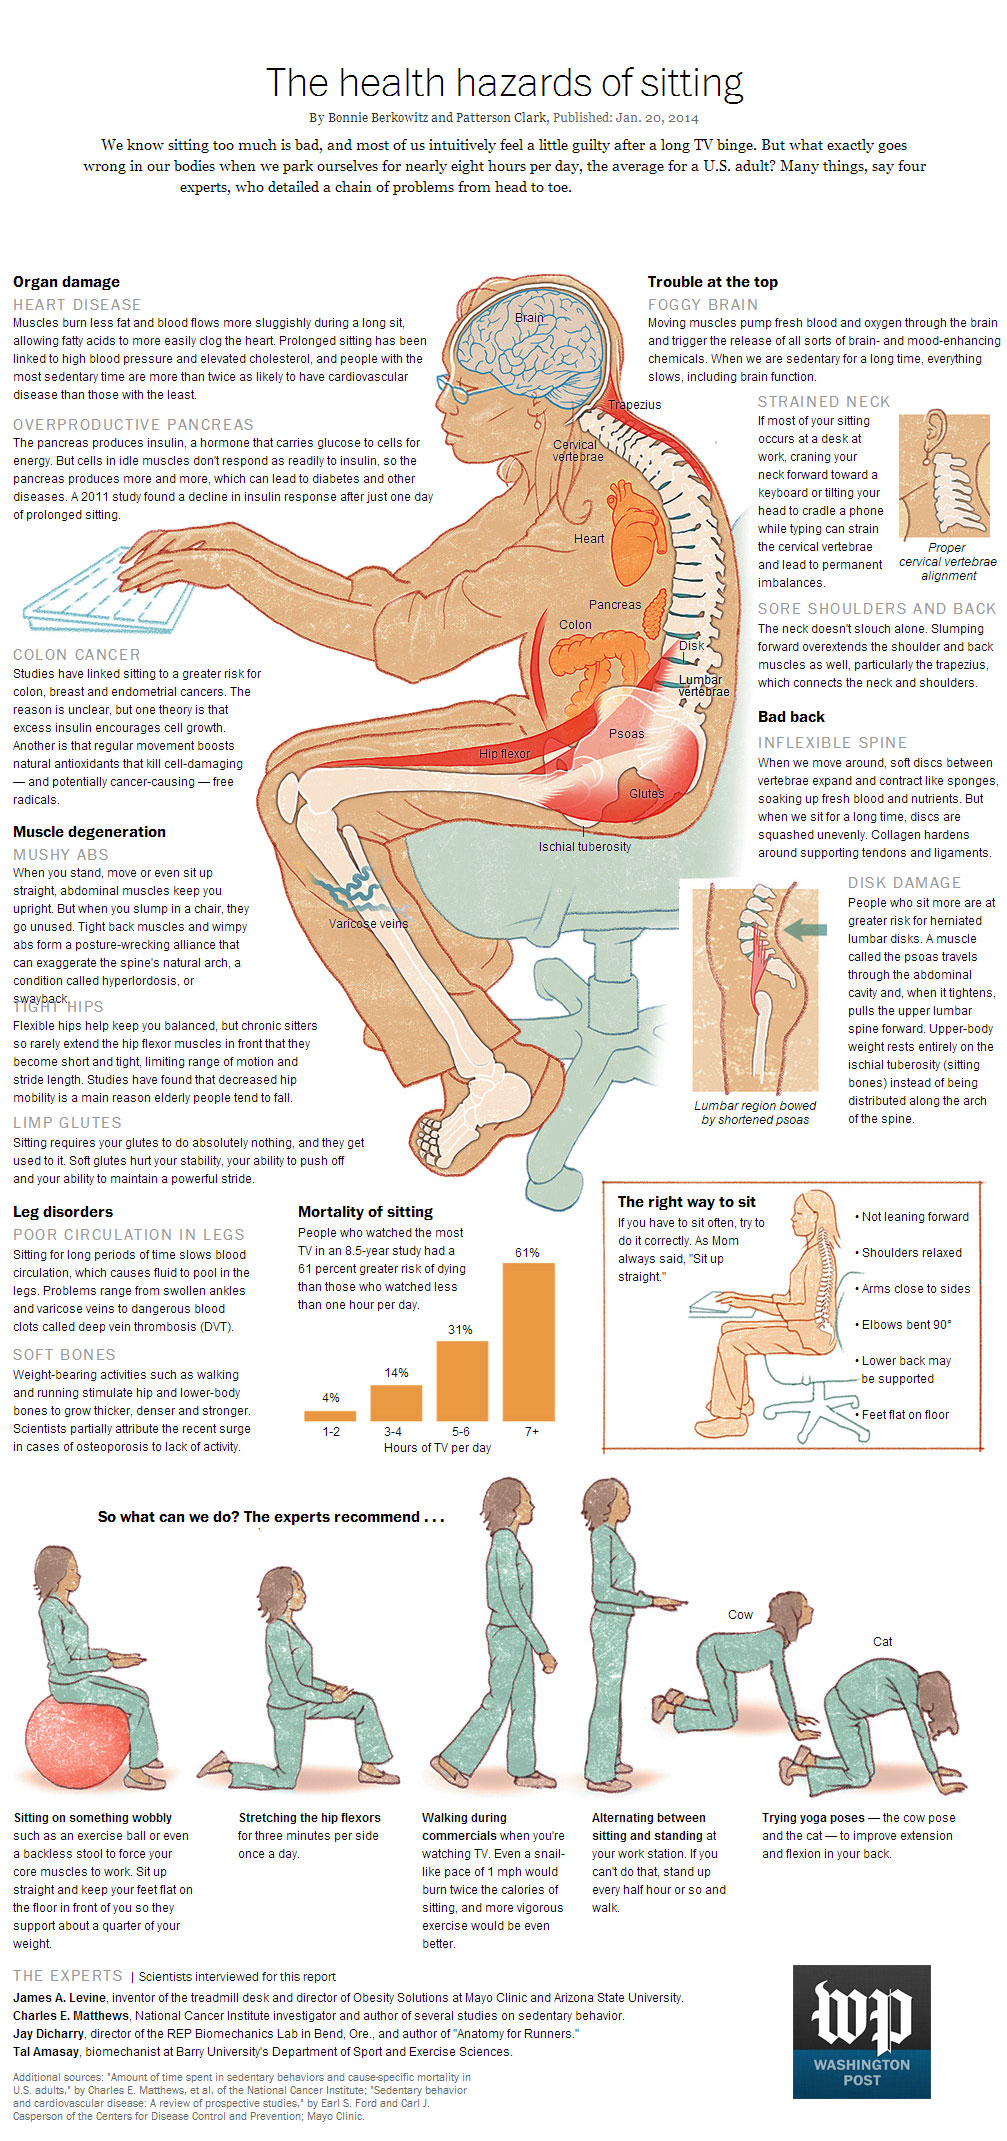 This is what can happen to your body when you sit at a desk all day